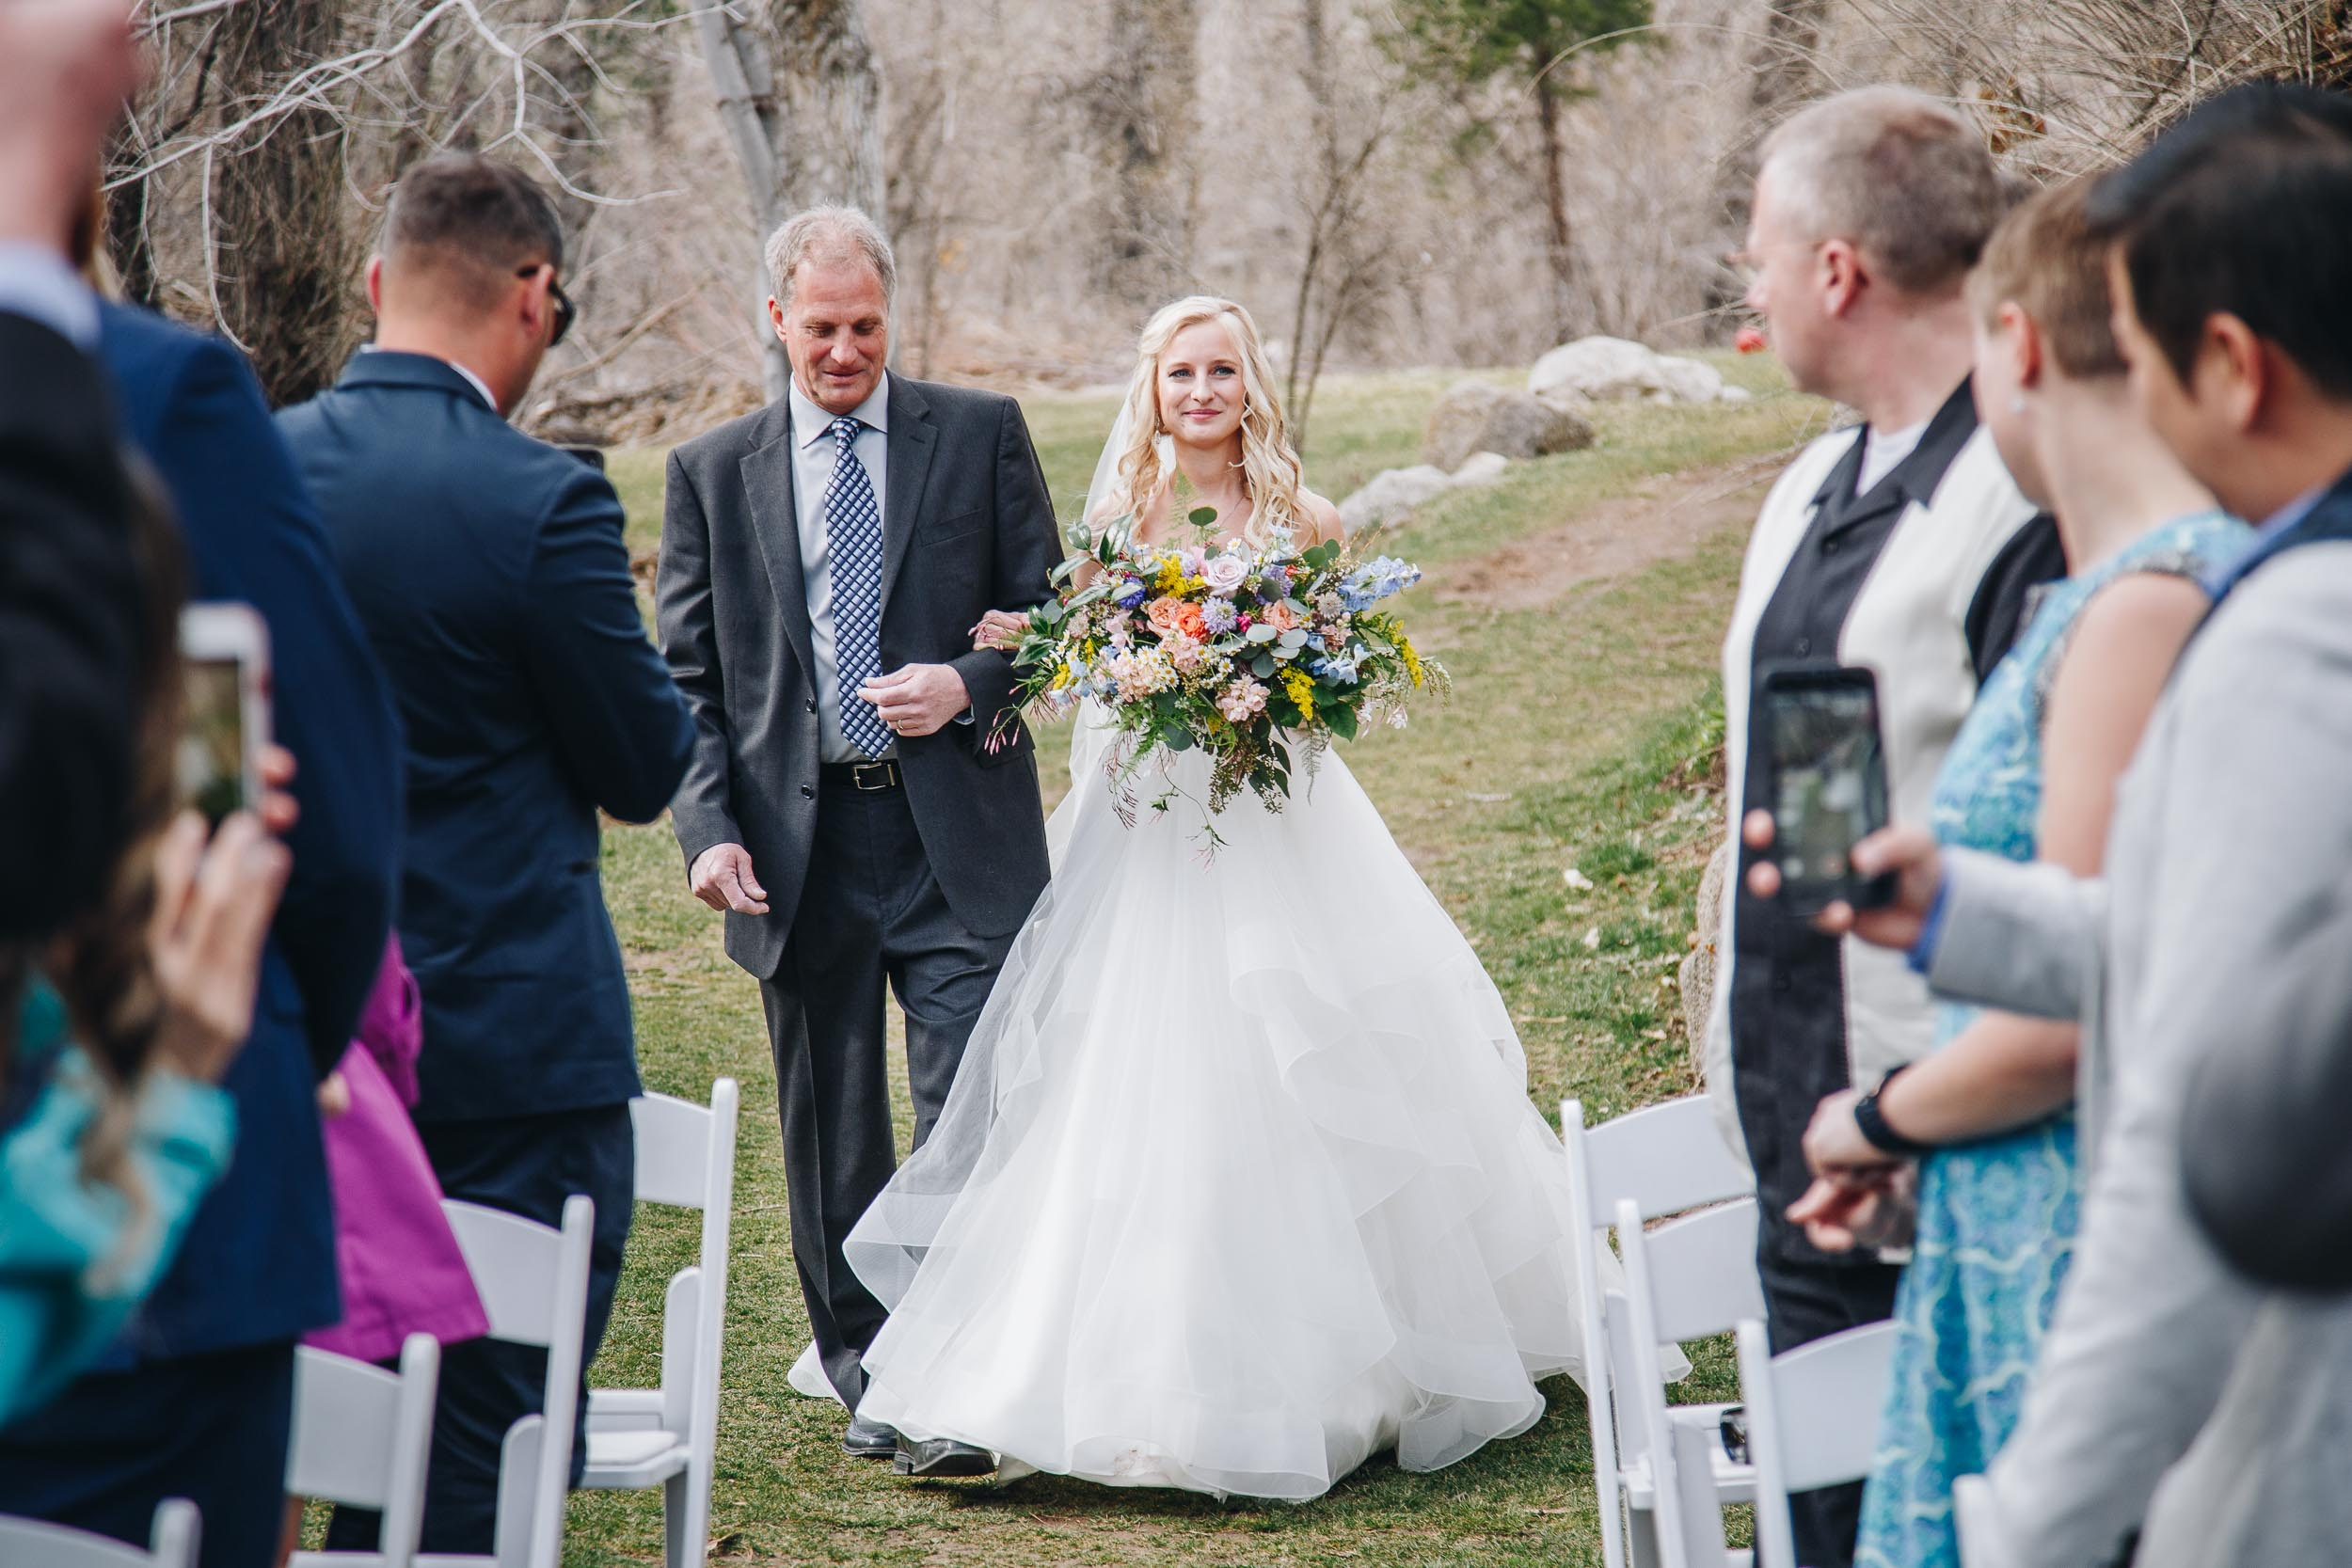 Sarah and Jack get married at Wedgewood Weddings Boulder Creek in Colorado-24.jpg